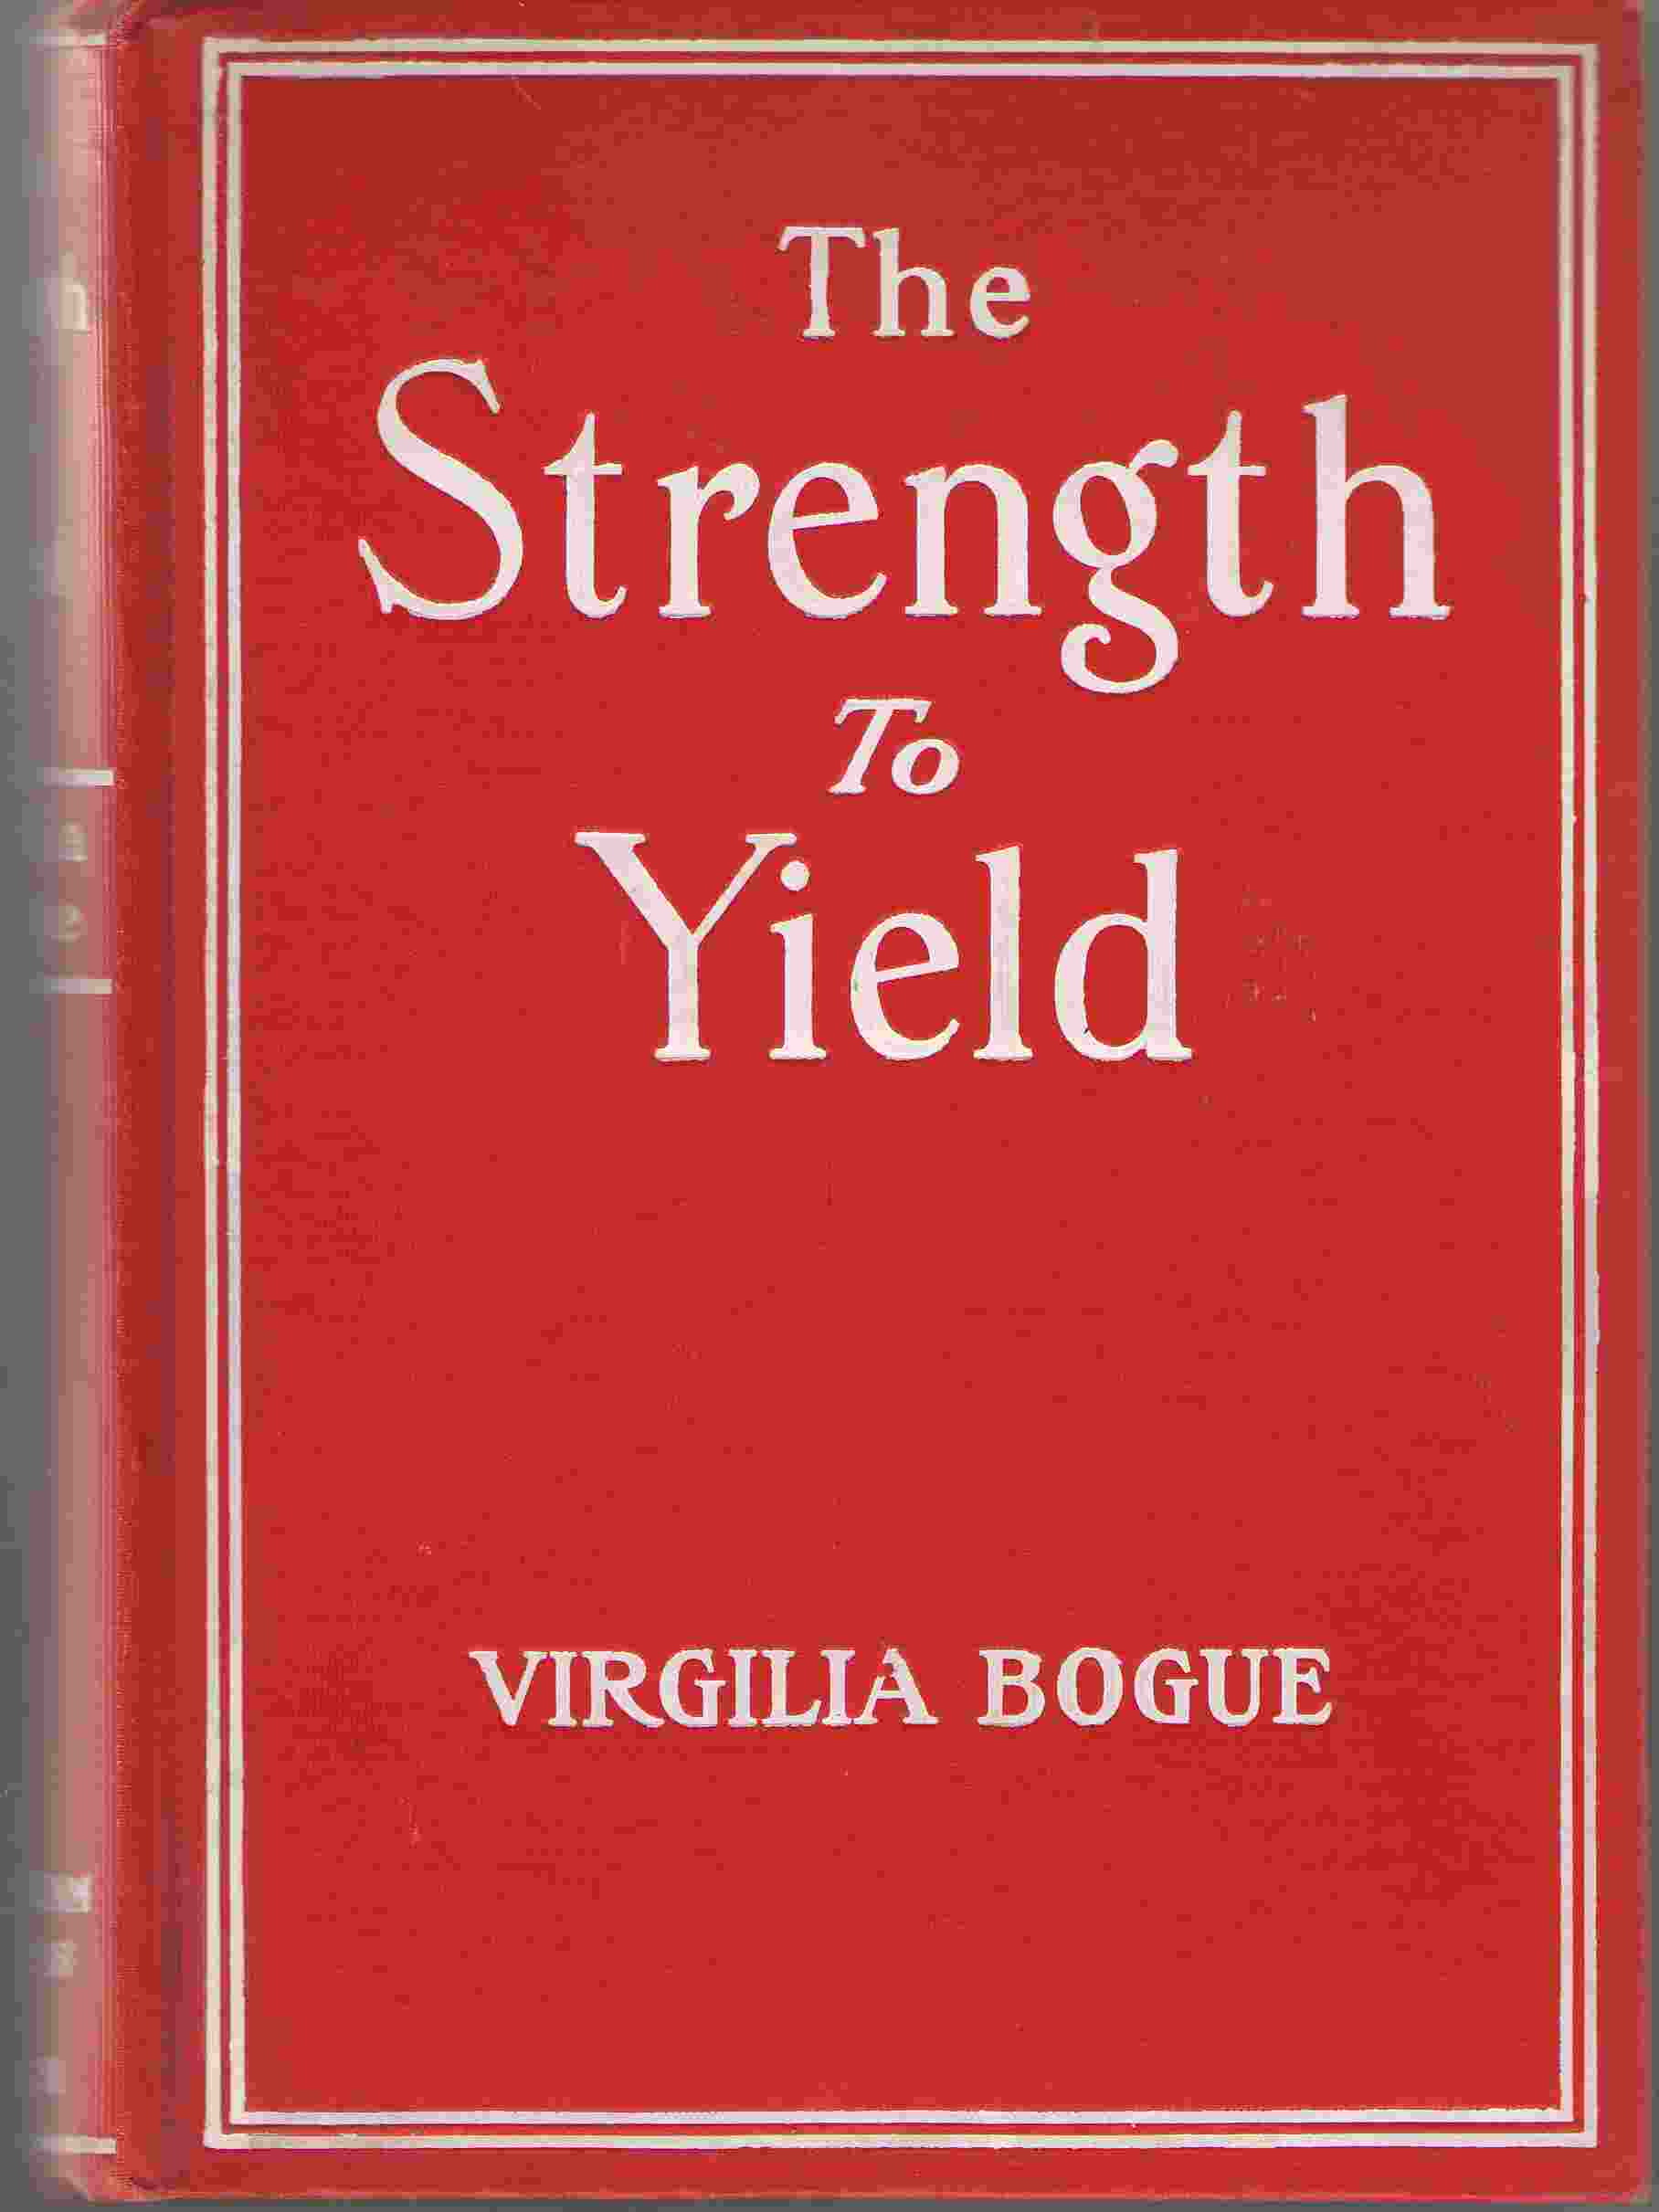 The Strength To Yield The Psychology of a Great Temptation, Bogue, Virgilia